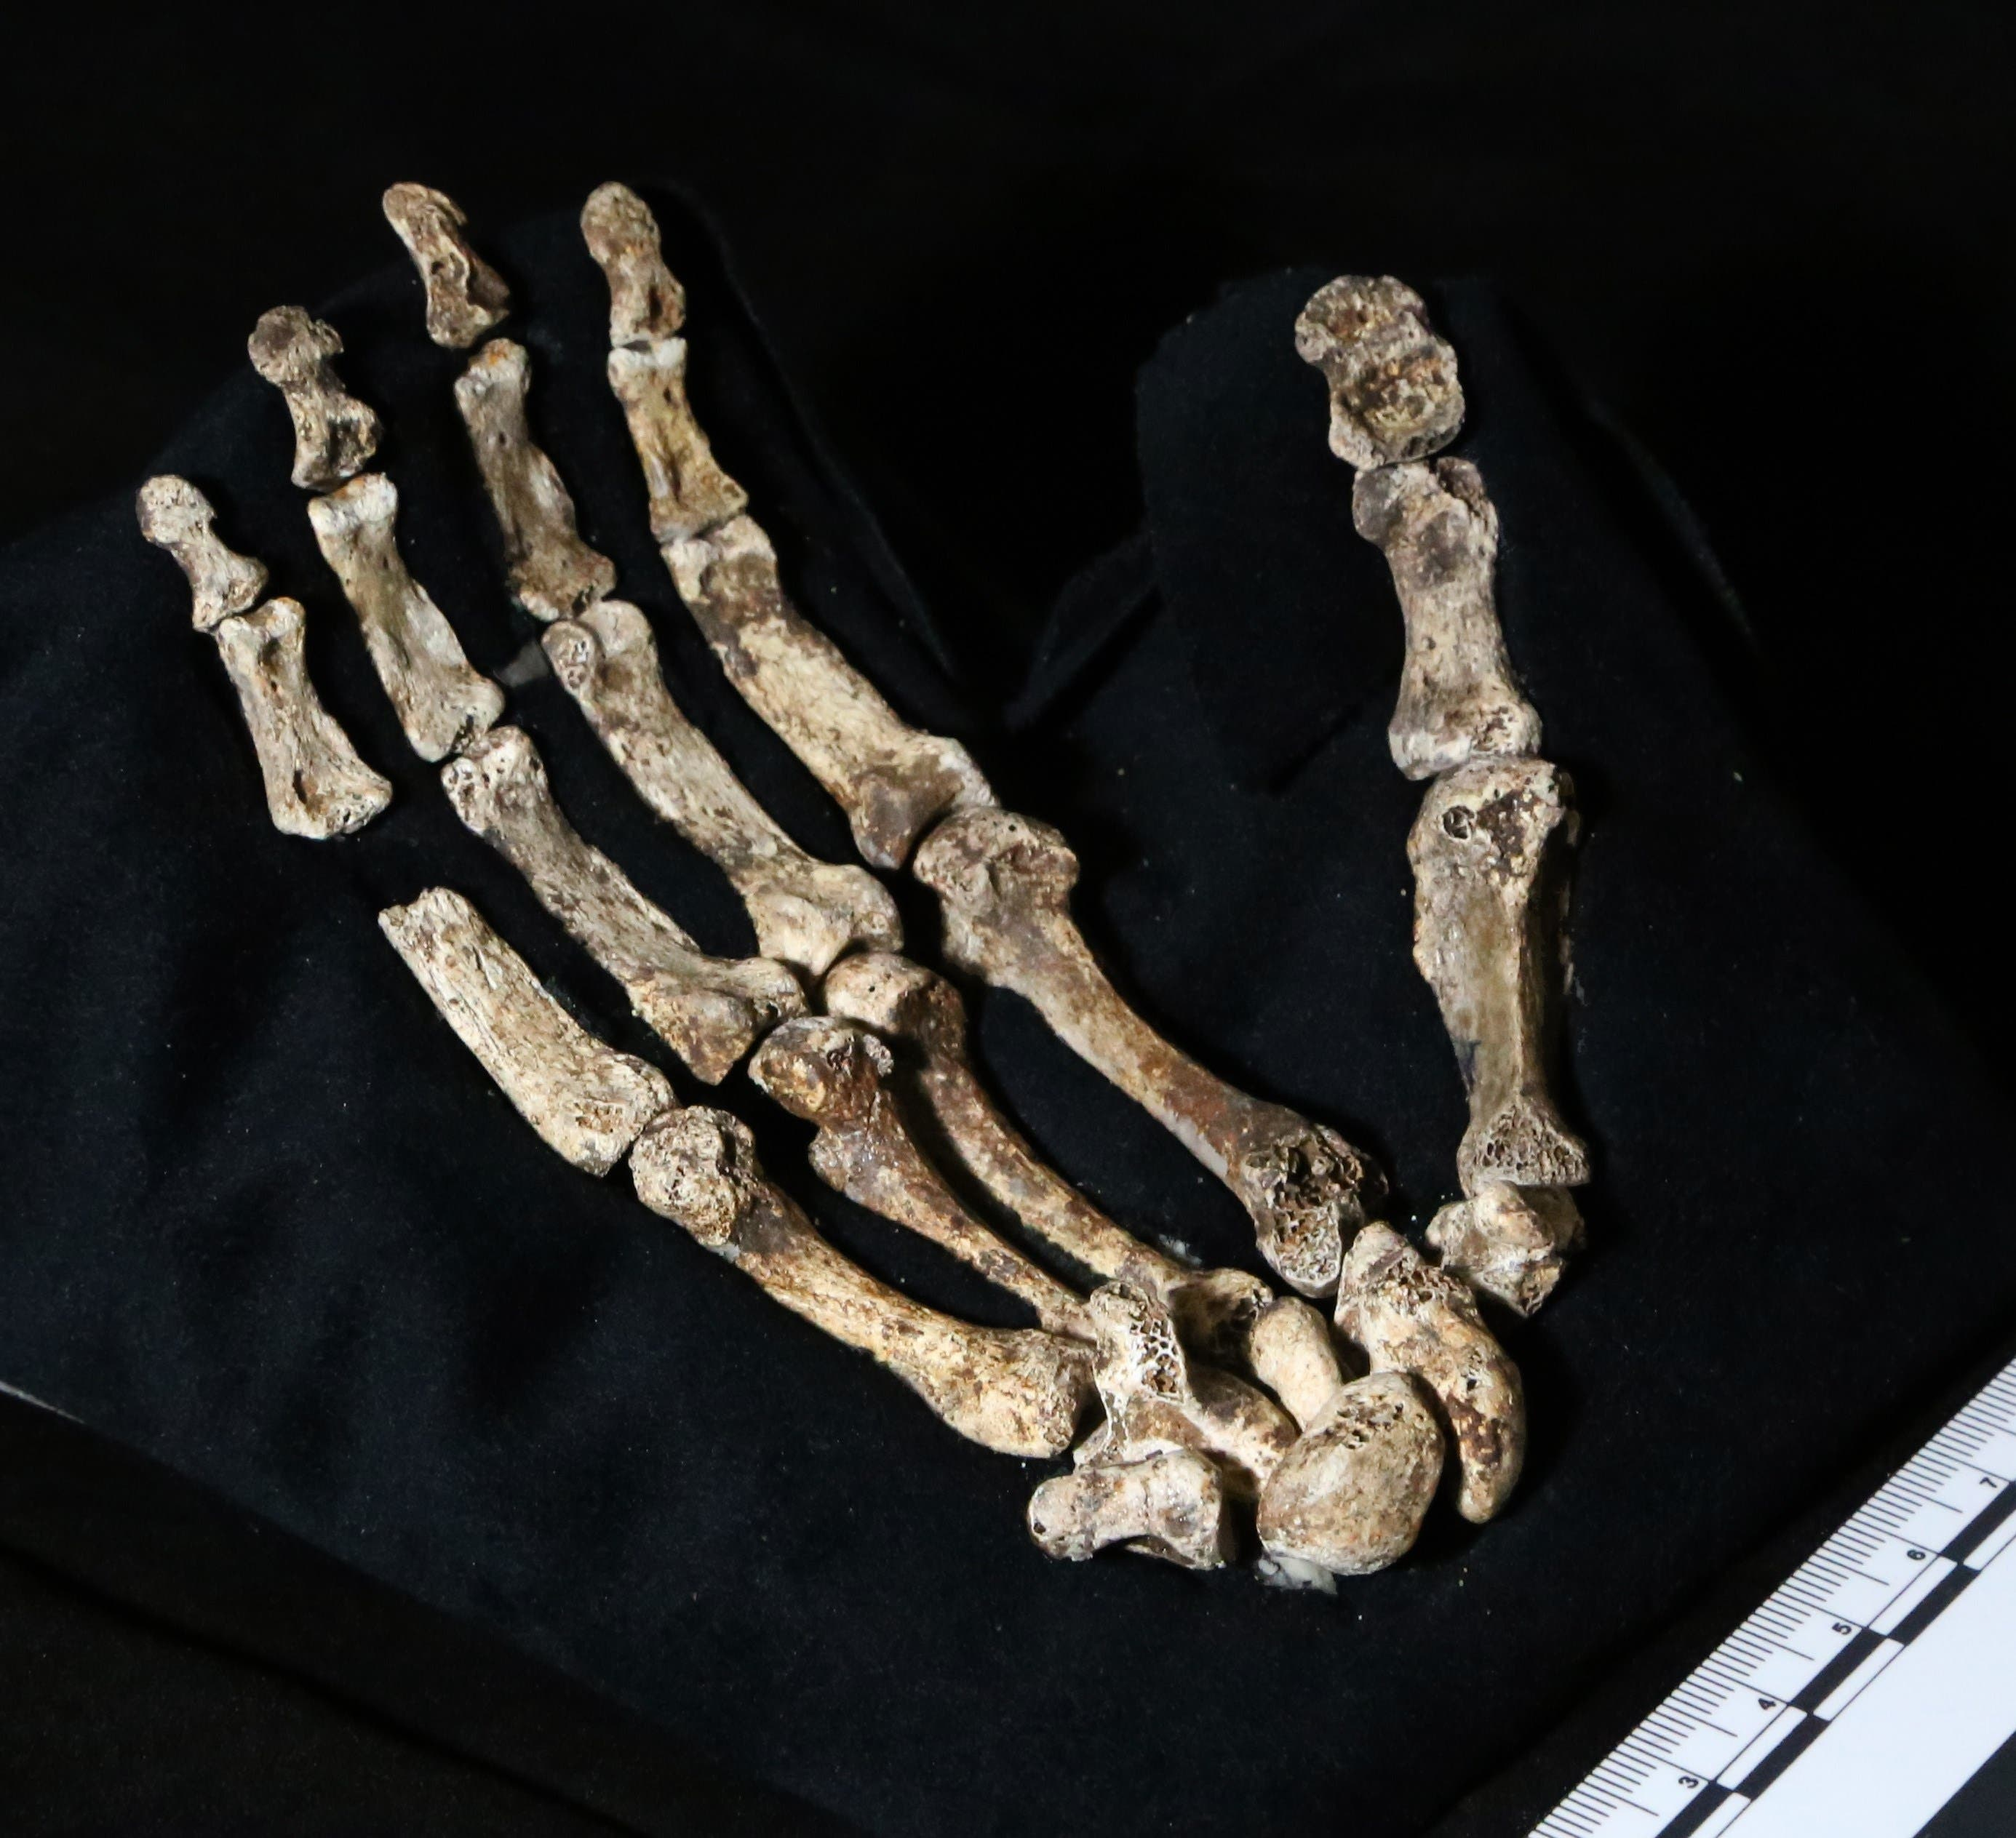 SAFRICA06 - Johannesburg, -, SOUTH AFRICA : A hand out image made available by the University of the Witwatersrand, shows the hand of Homo Naledi, pictured in the Wits bone vault at the Evolutionary Studies Institute at the University of the Witwatersrand, Johannesburg, on September 13, 2014. The fossils are among nearly 1,700 bones and teeth retrieved from a nearly inaccessible cave near Johannesburg. The fossil trove was created, scientists believe, by Homo Naledi repeatedly secreting the bodies of their dead companions in the cave. Analysis of the fossils -- part of a project known as the Rising Star Expedition -- was led in part by paleoanthropologist John Hawks, professor of anthropology at the University of Wisconsin-Madison. AFP PHOTO/HO/ WITS UNIVERSITY/JOHN HAWKS